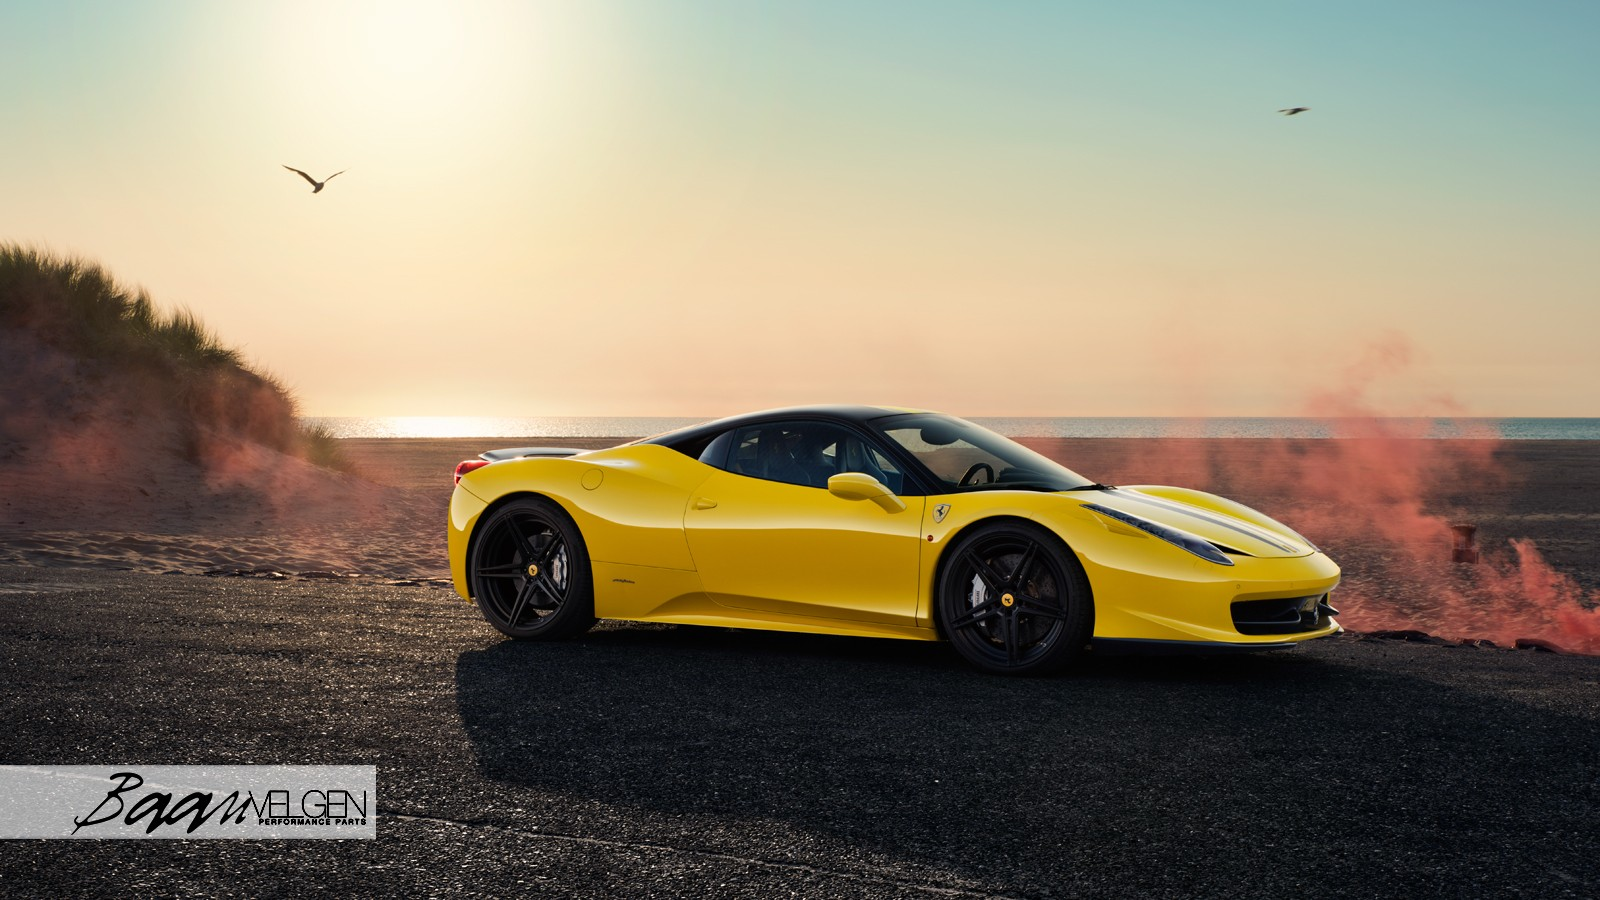 Ferrari 458 with an IPE Exhaust System & ADV.1 Wheels